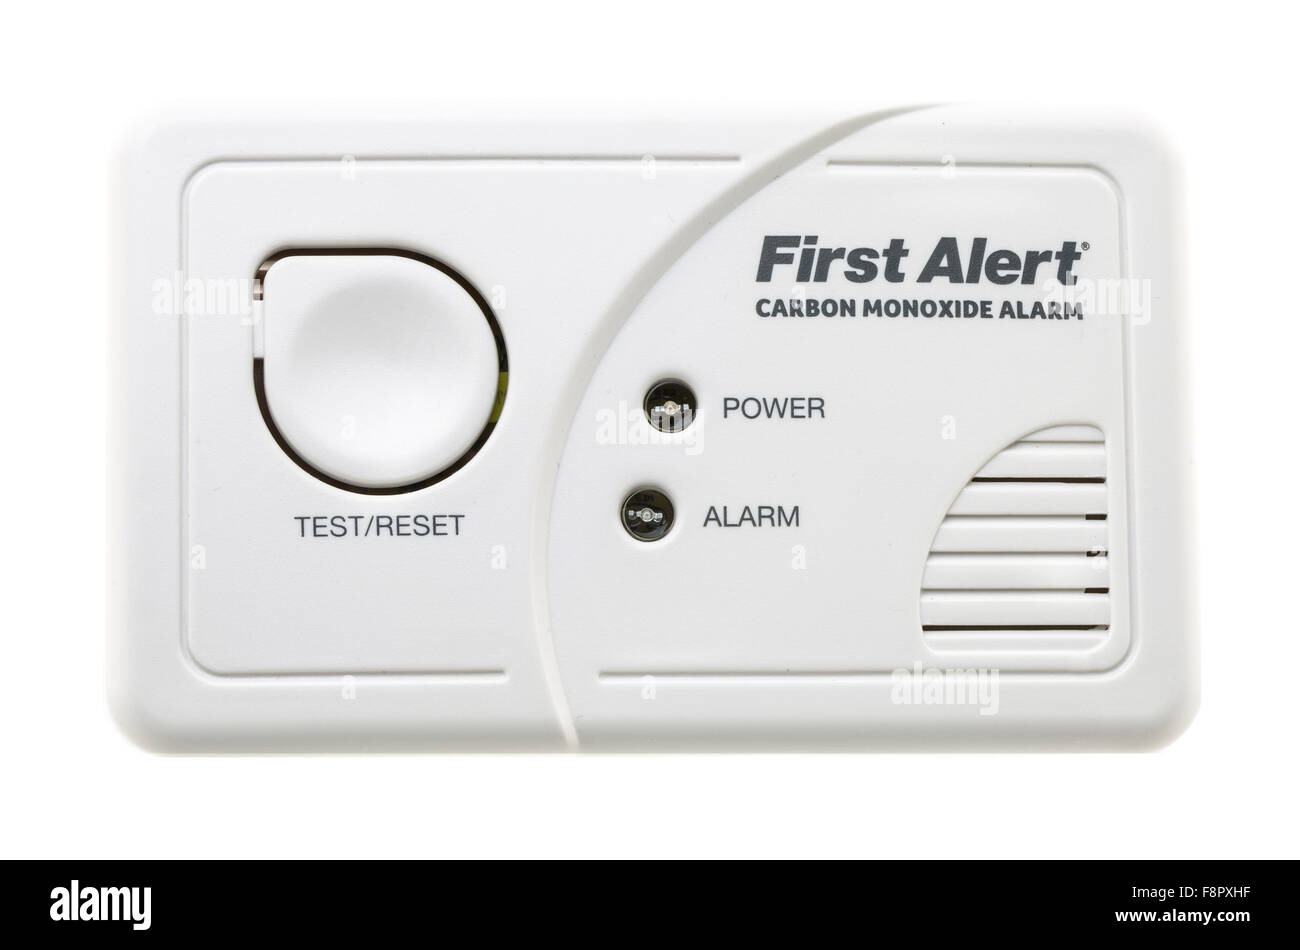 First Alert CO Carbon Monoxide Alarm on a White Background - Stock Image